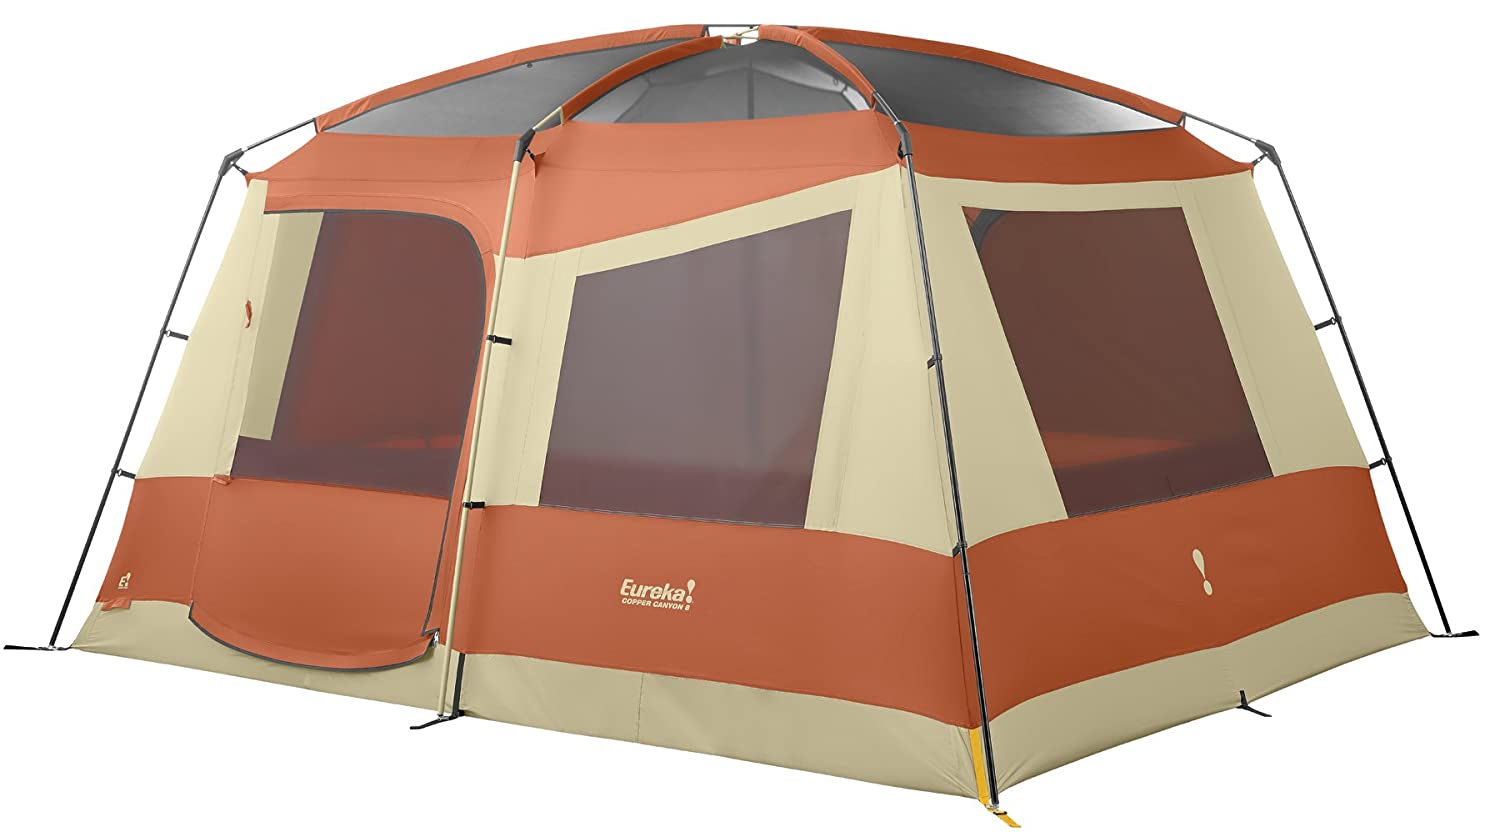 Amazon.com  Eureka Copper Canyon 8 -Person Tent  Family Tents  Sports u0026 Outdoors  sc 1 st  Amazon.com & Amazon.com : Eureka Copper Canyon 8 -Person Tent : Family Tents ...